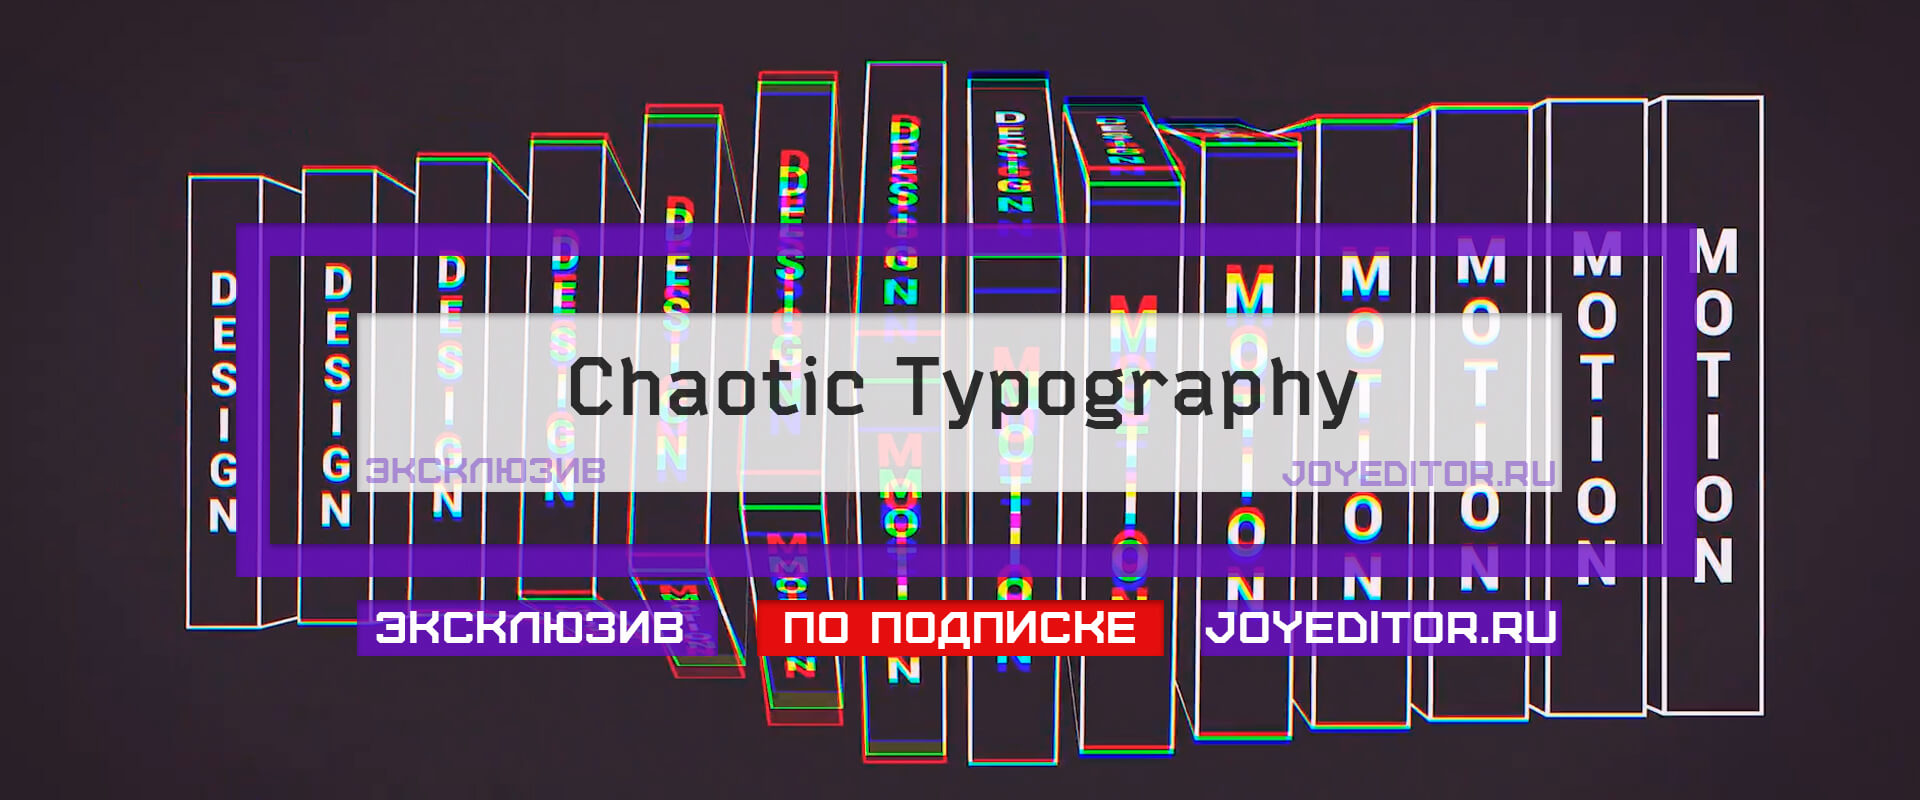 Chaotic Typography